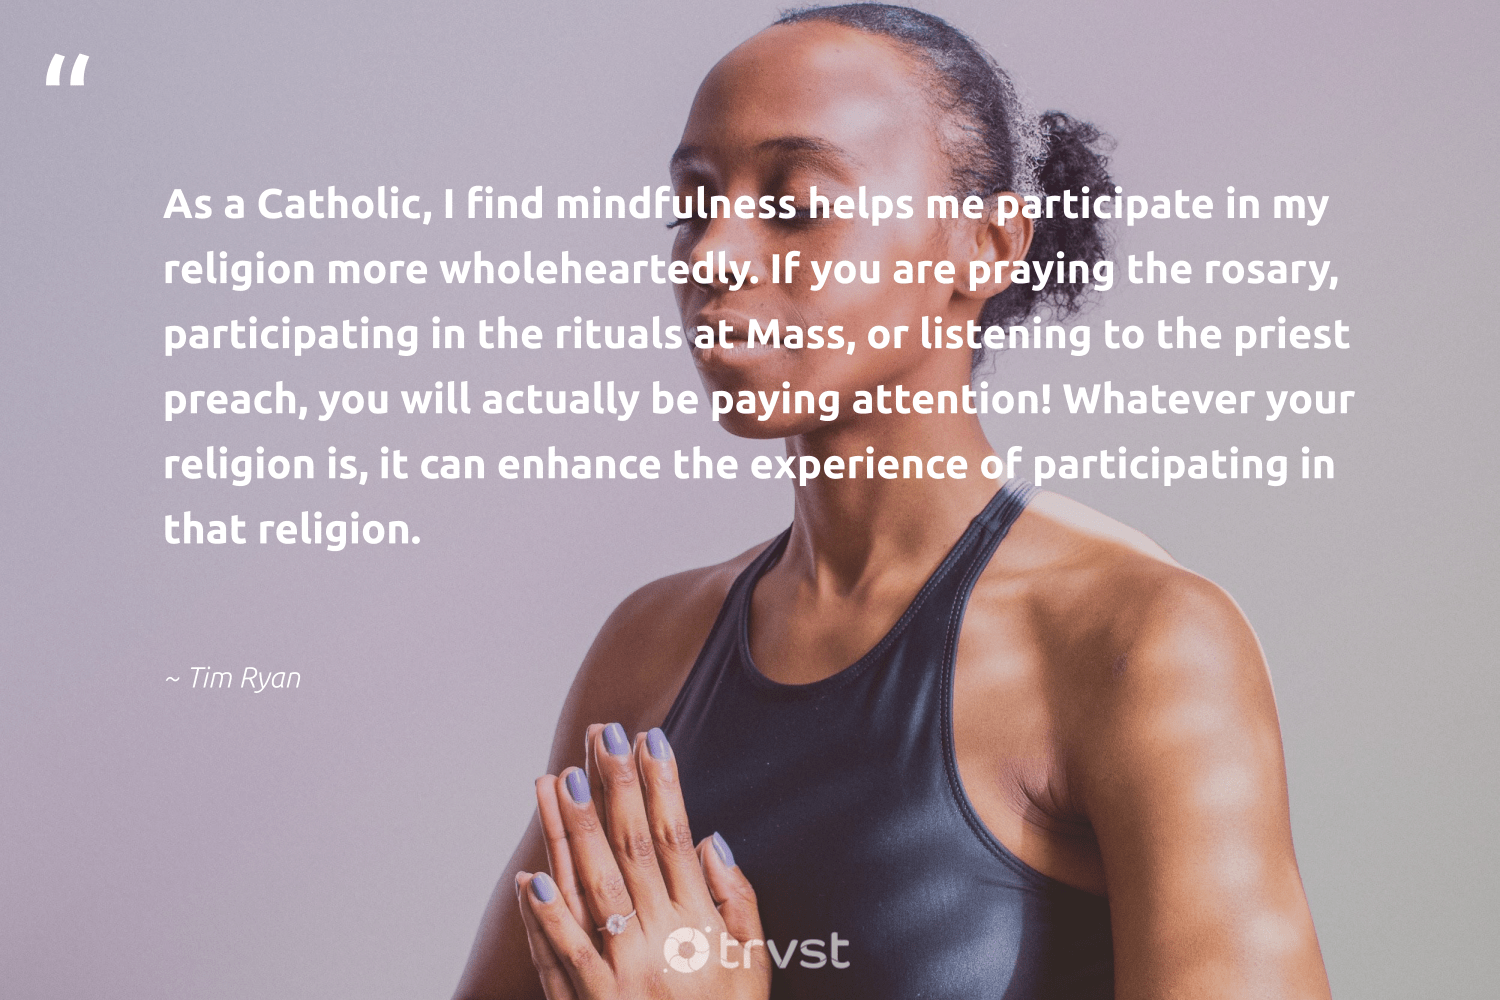 """""""As a Catholic, I find mindfulness helps me participate in my religion more wholeheartedly. If you are praying the rosary, participating in the rituals at Mass, or listening to the priest preach, you will actually be paying attention! Whatever your religion is, it can enhance the experience of participating in that religion.""""  - Tim Ryan #trvst #quotes #mindfulness #meditation #positivity #health #dosomething #mindful #wellness #togetherwecan #socialchange #goals"""